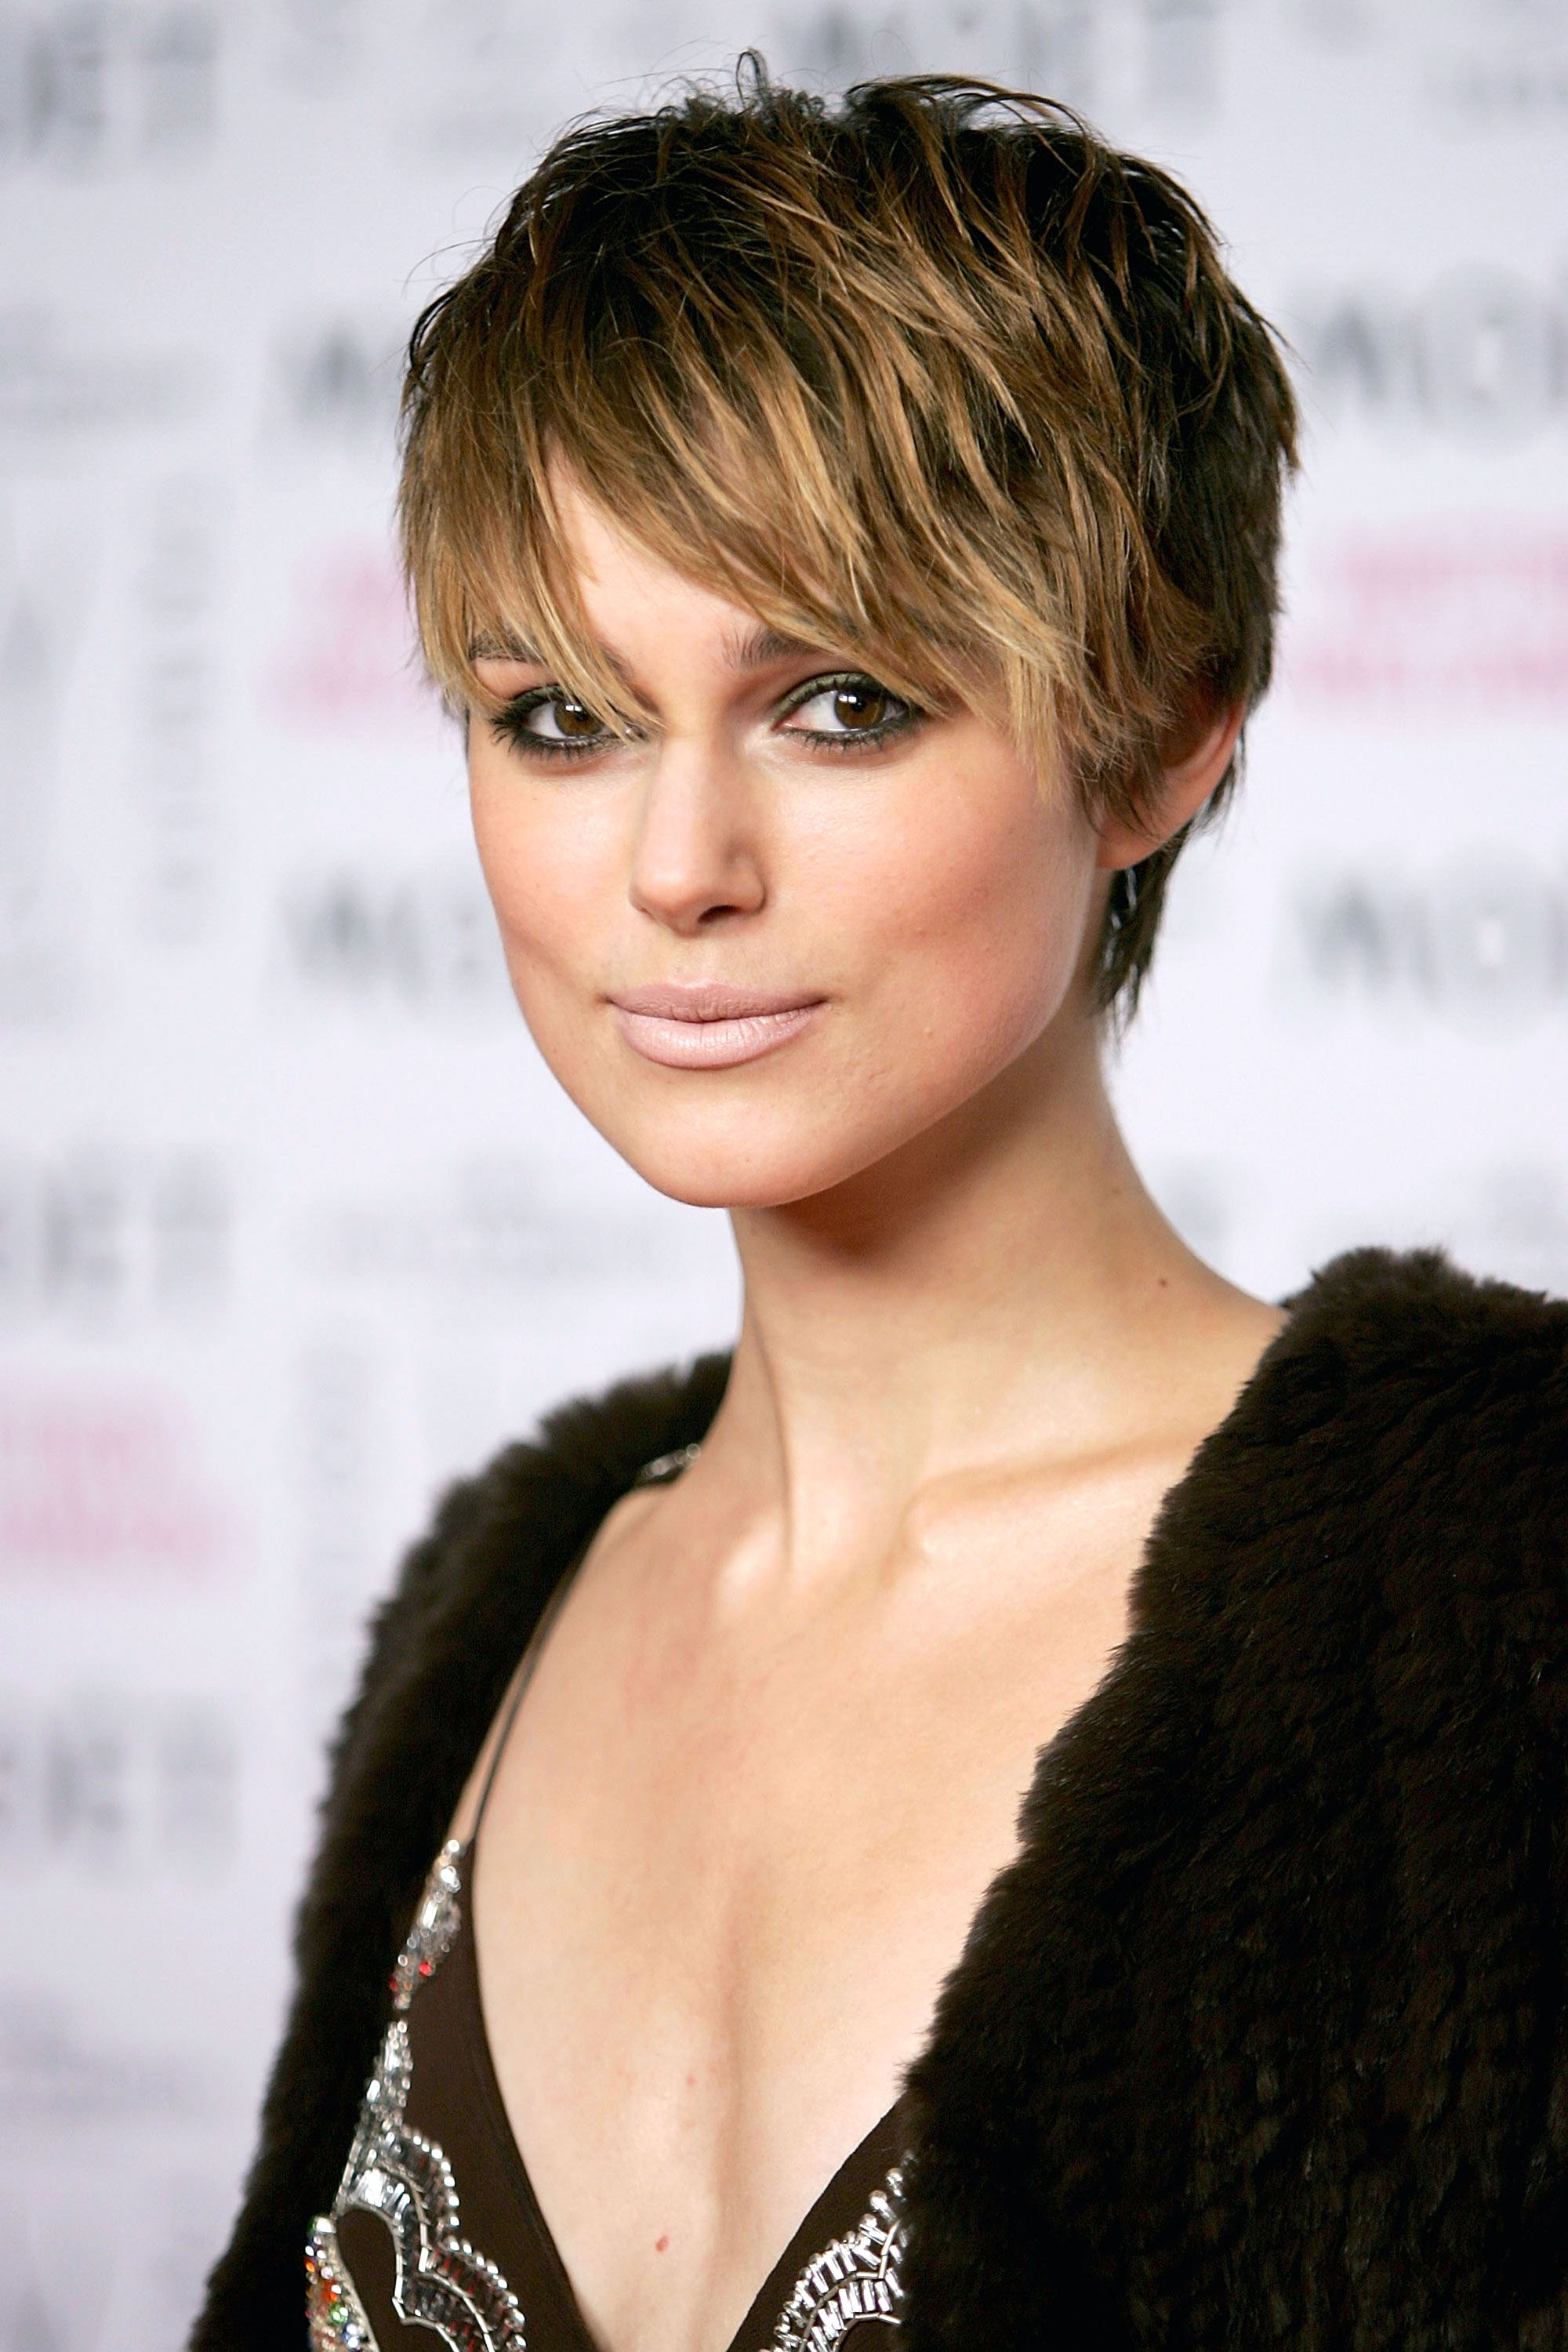 40 Pixie Cuts We Love For 2018 Short Hairstyles From Clic To Edgy